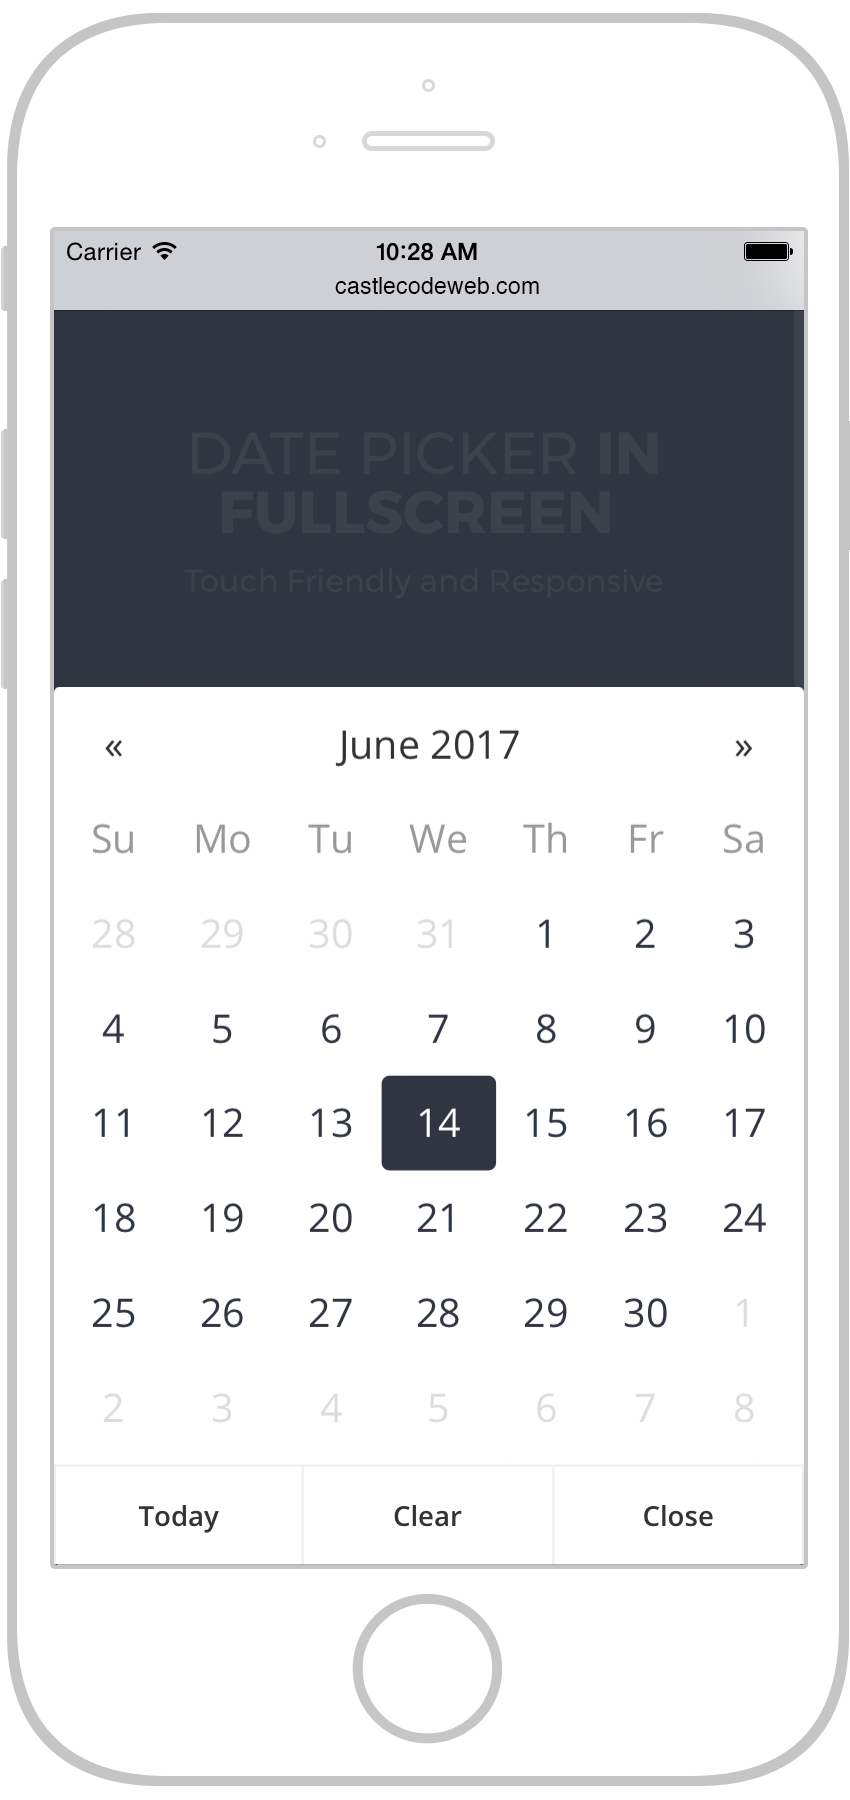 Date Picker In Fullscreen | Touch Friendly and Responsive